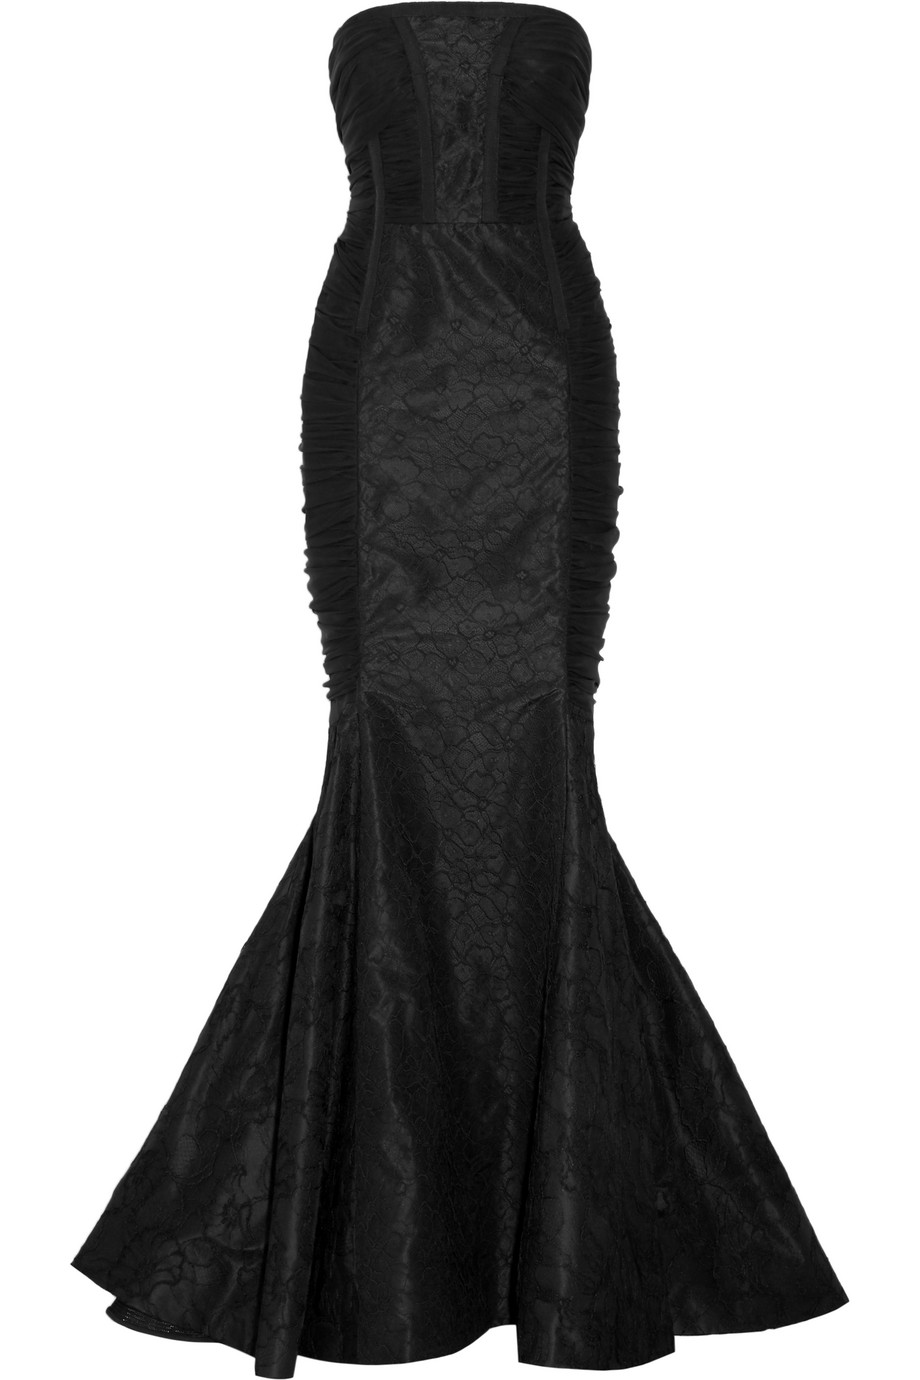 Oscar De La Renta Ruched Lace and Silk-Chiffon Gown, Black, Women's, Size: 8